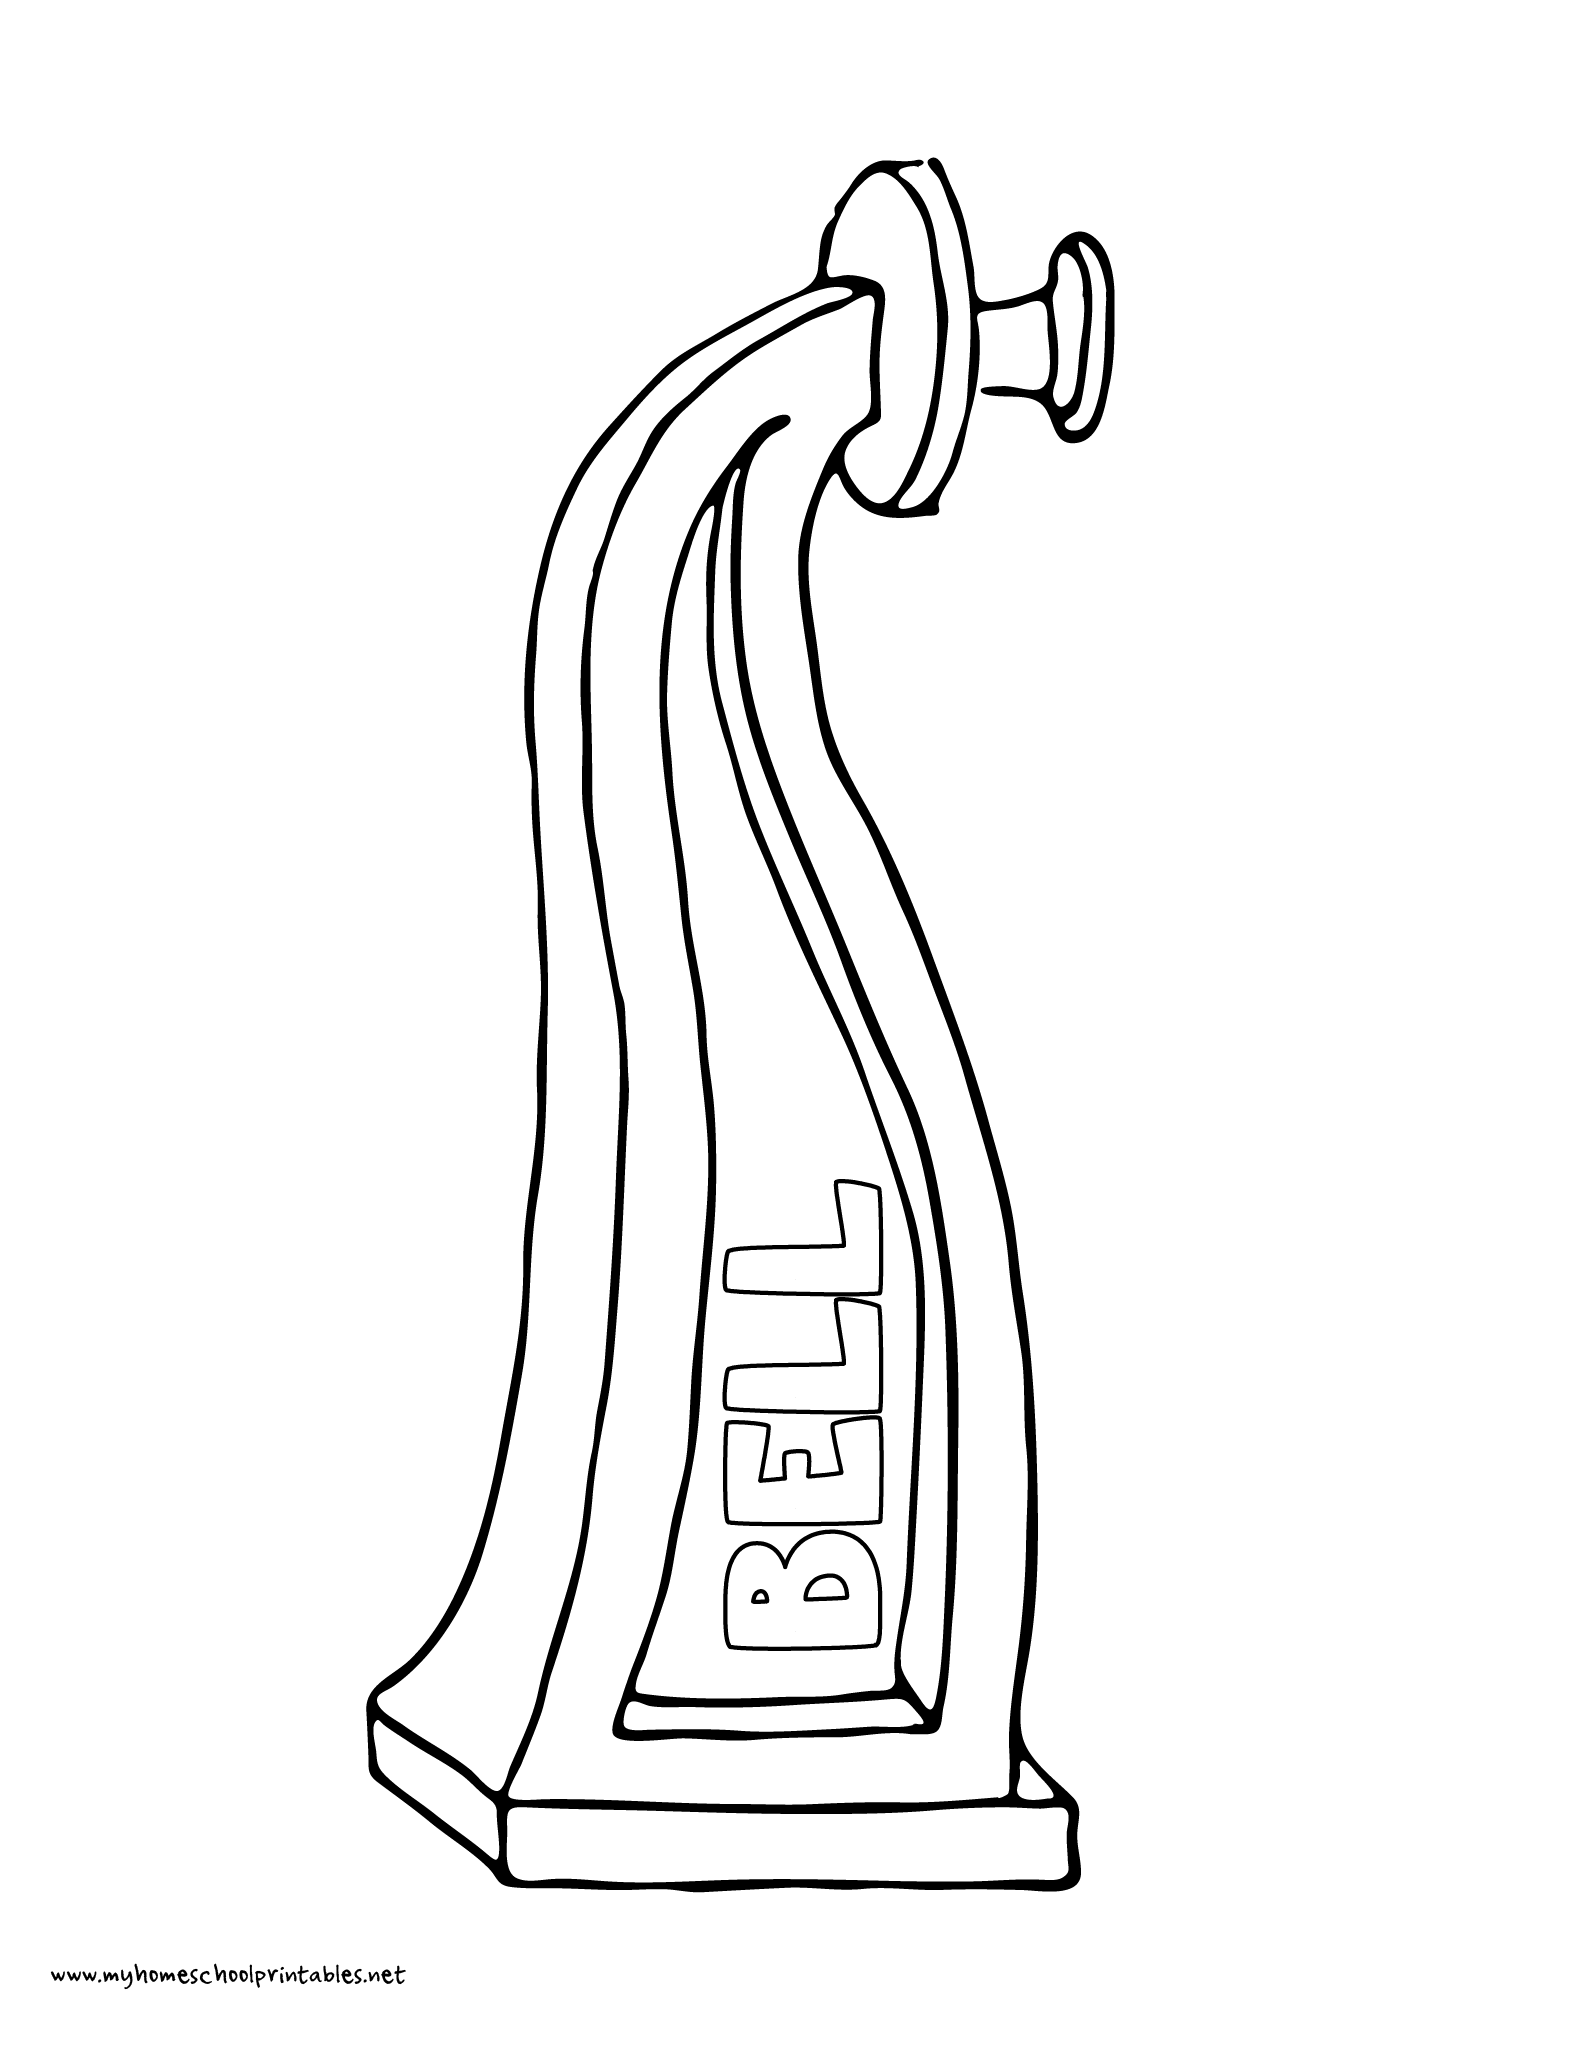 World History Coloring Pages Printables Alexander Graham Bell First Telephone